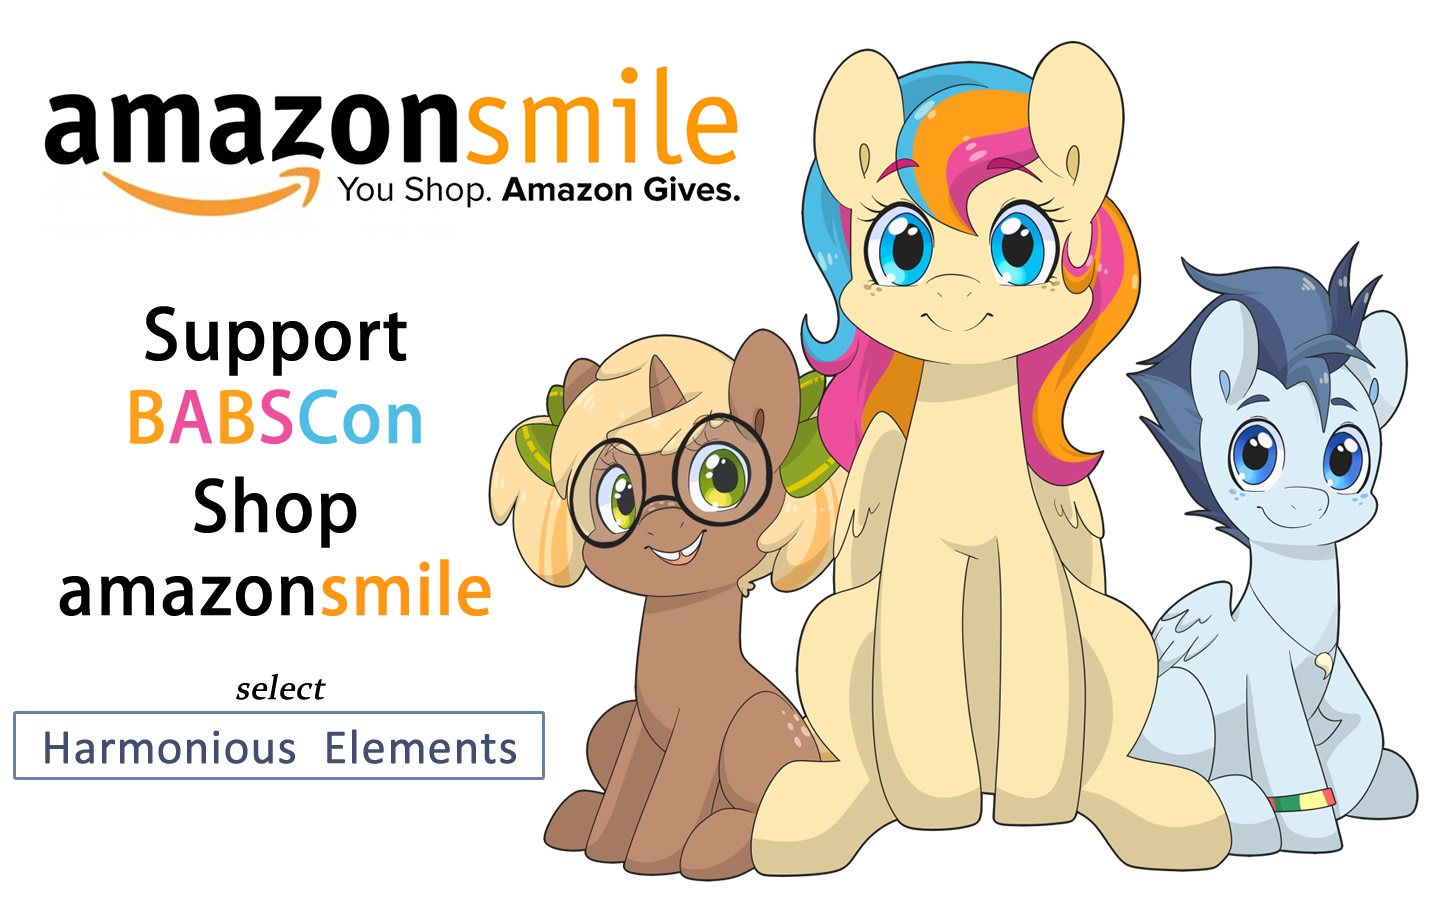 Support BABSCon with AmazonSmile